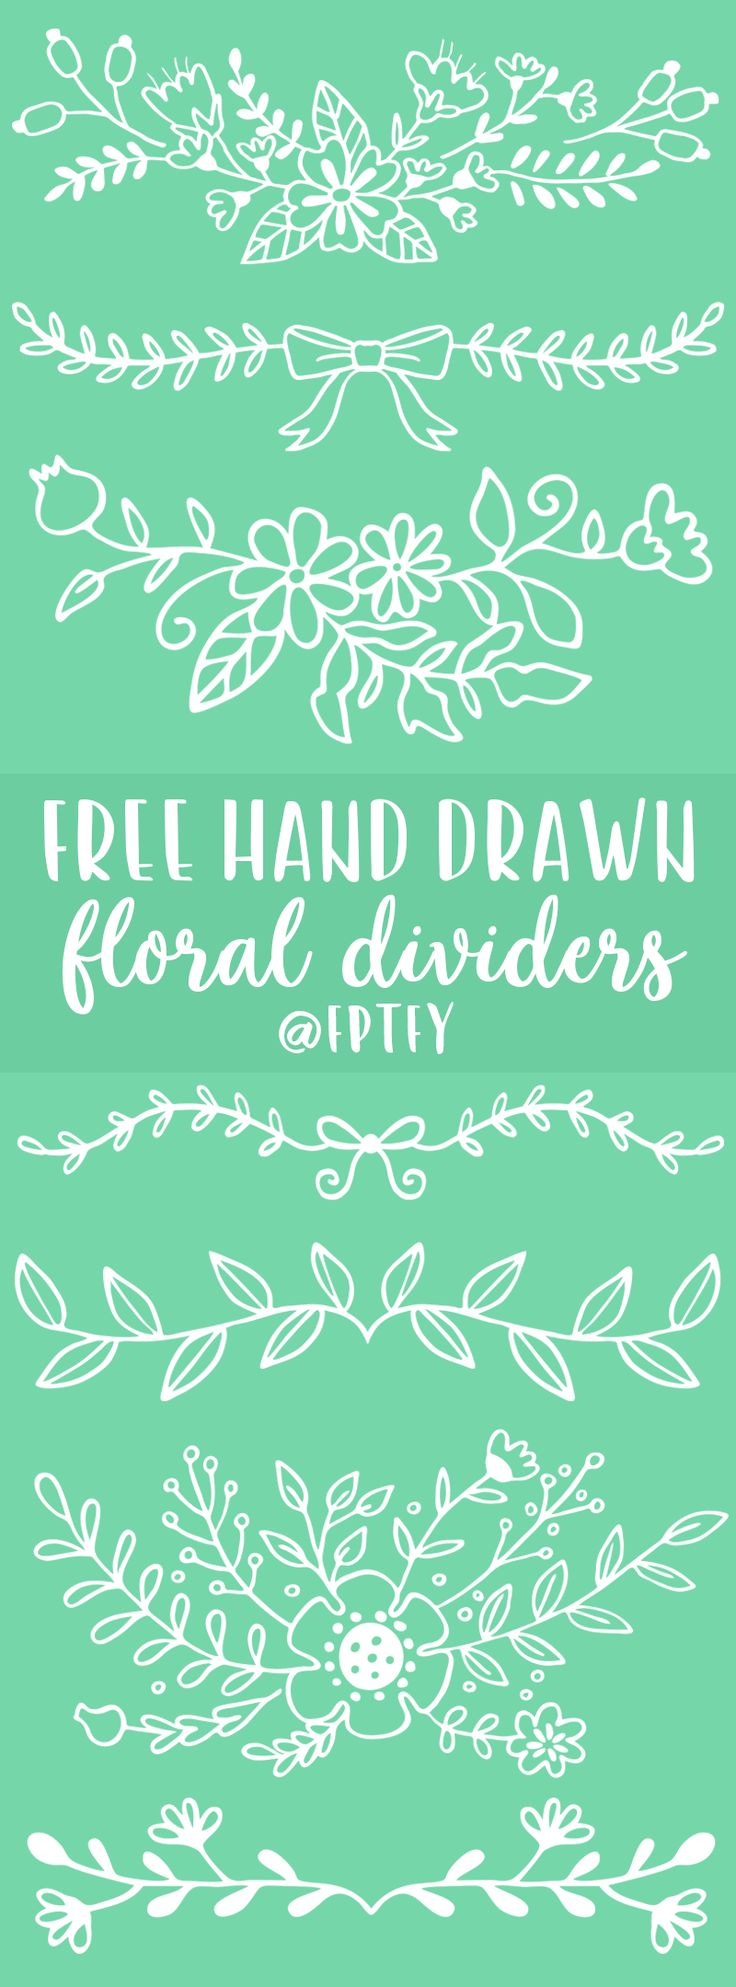 Free Hand Drawn Floral Divider Images: These lovely floral divider images are yours for the taking! You could use them I many different ways- as overlays on pictures, stickers, journaling decoration and so on! To download click here!   Be Sure To Subscribe To Receive  Exclusive Freebies and Post! :) Enjoy!   …………………………………………………………………………………………………………………… Forasmuch as ye...Read More »